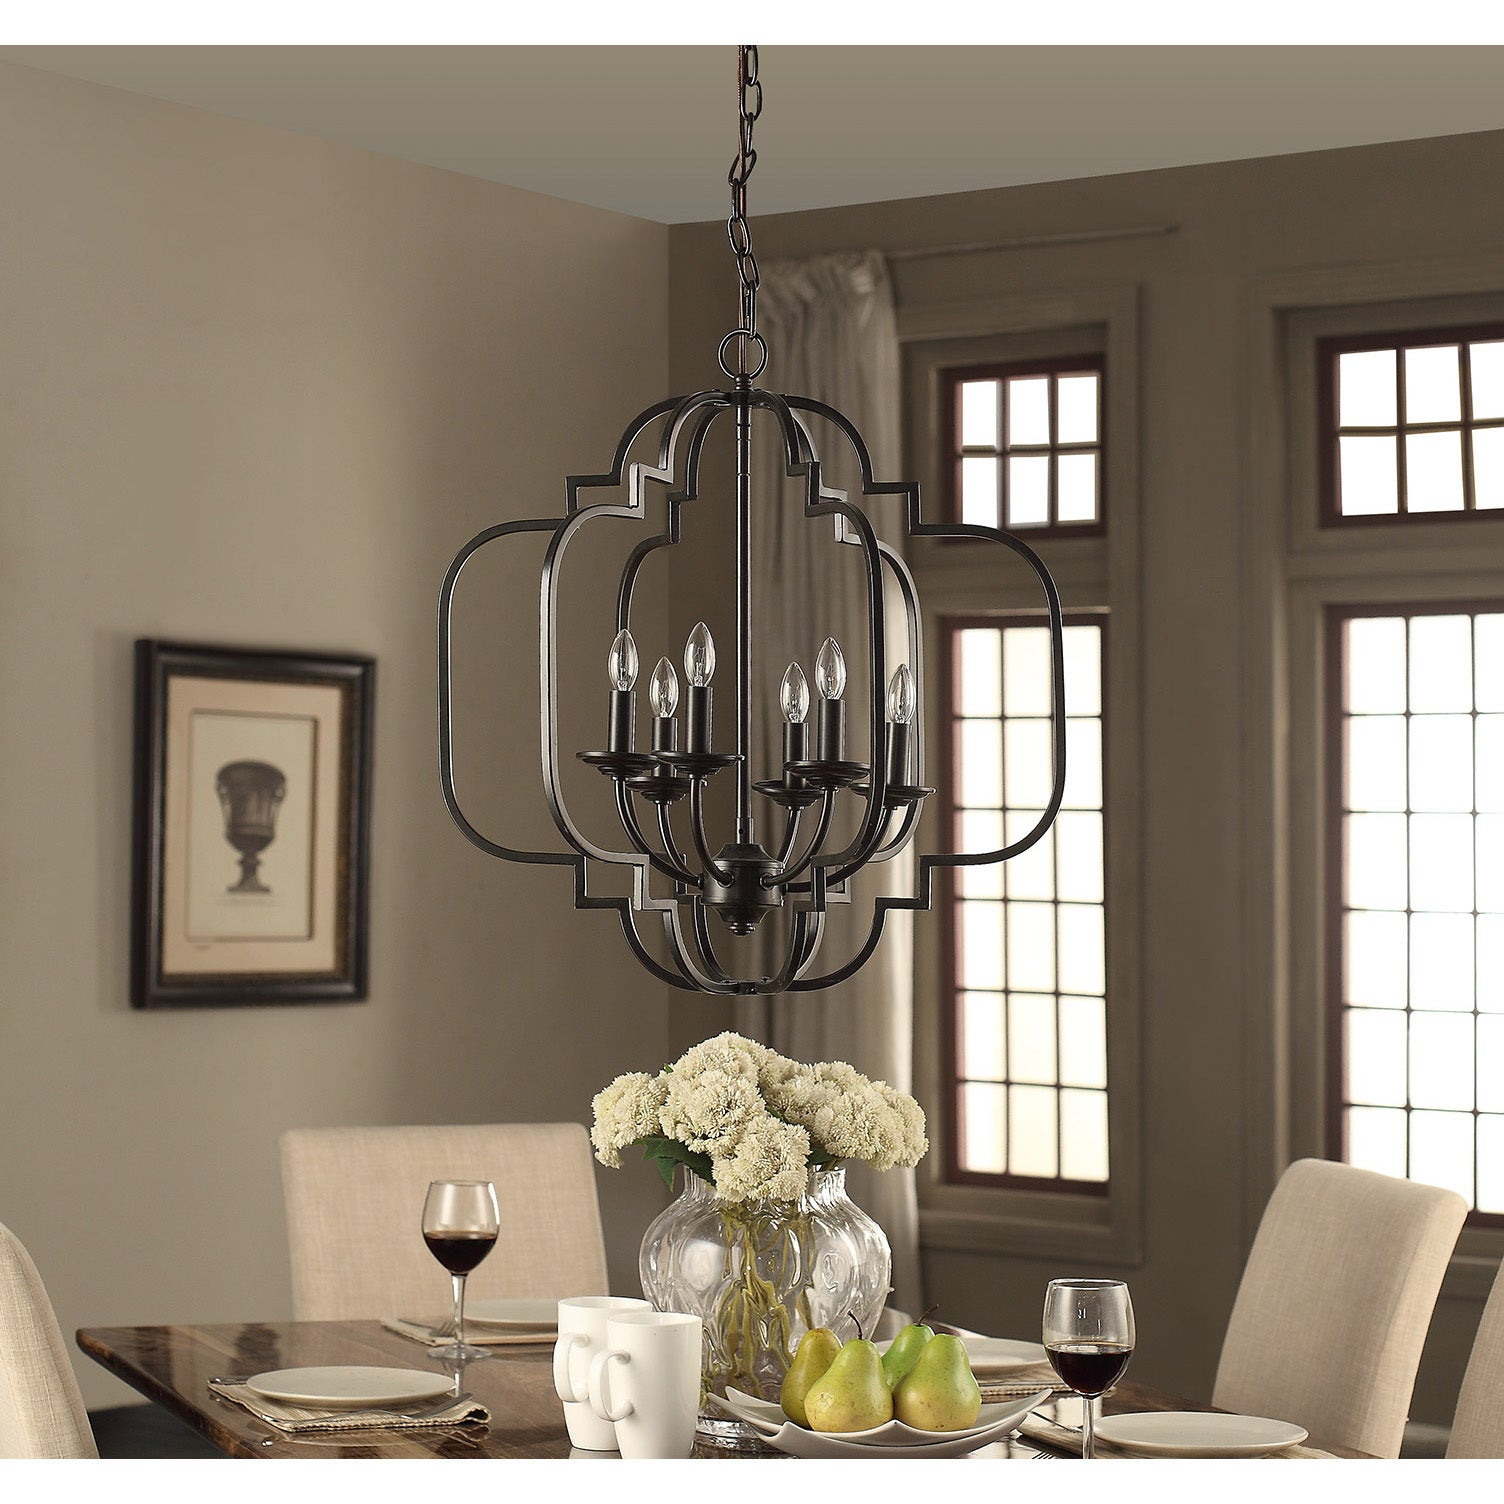 Buy Chandeliers Online At Overstock